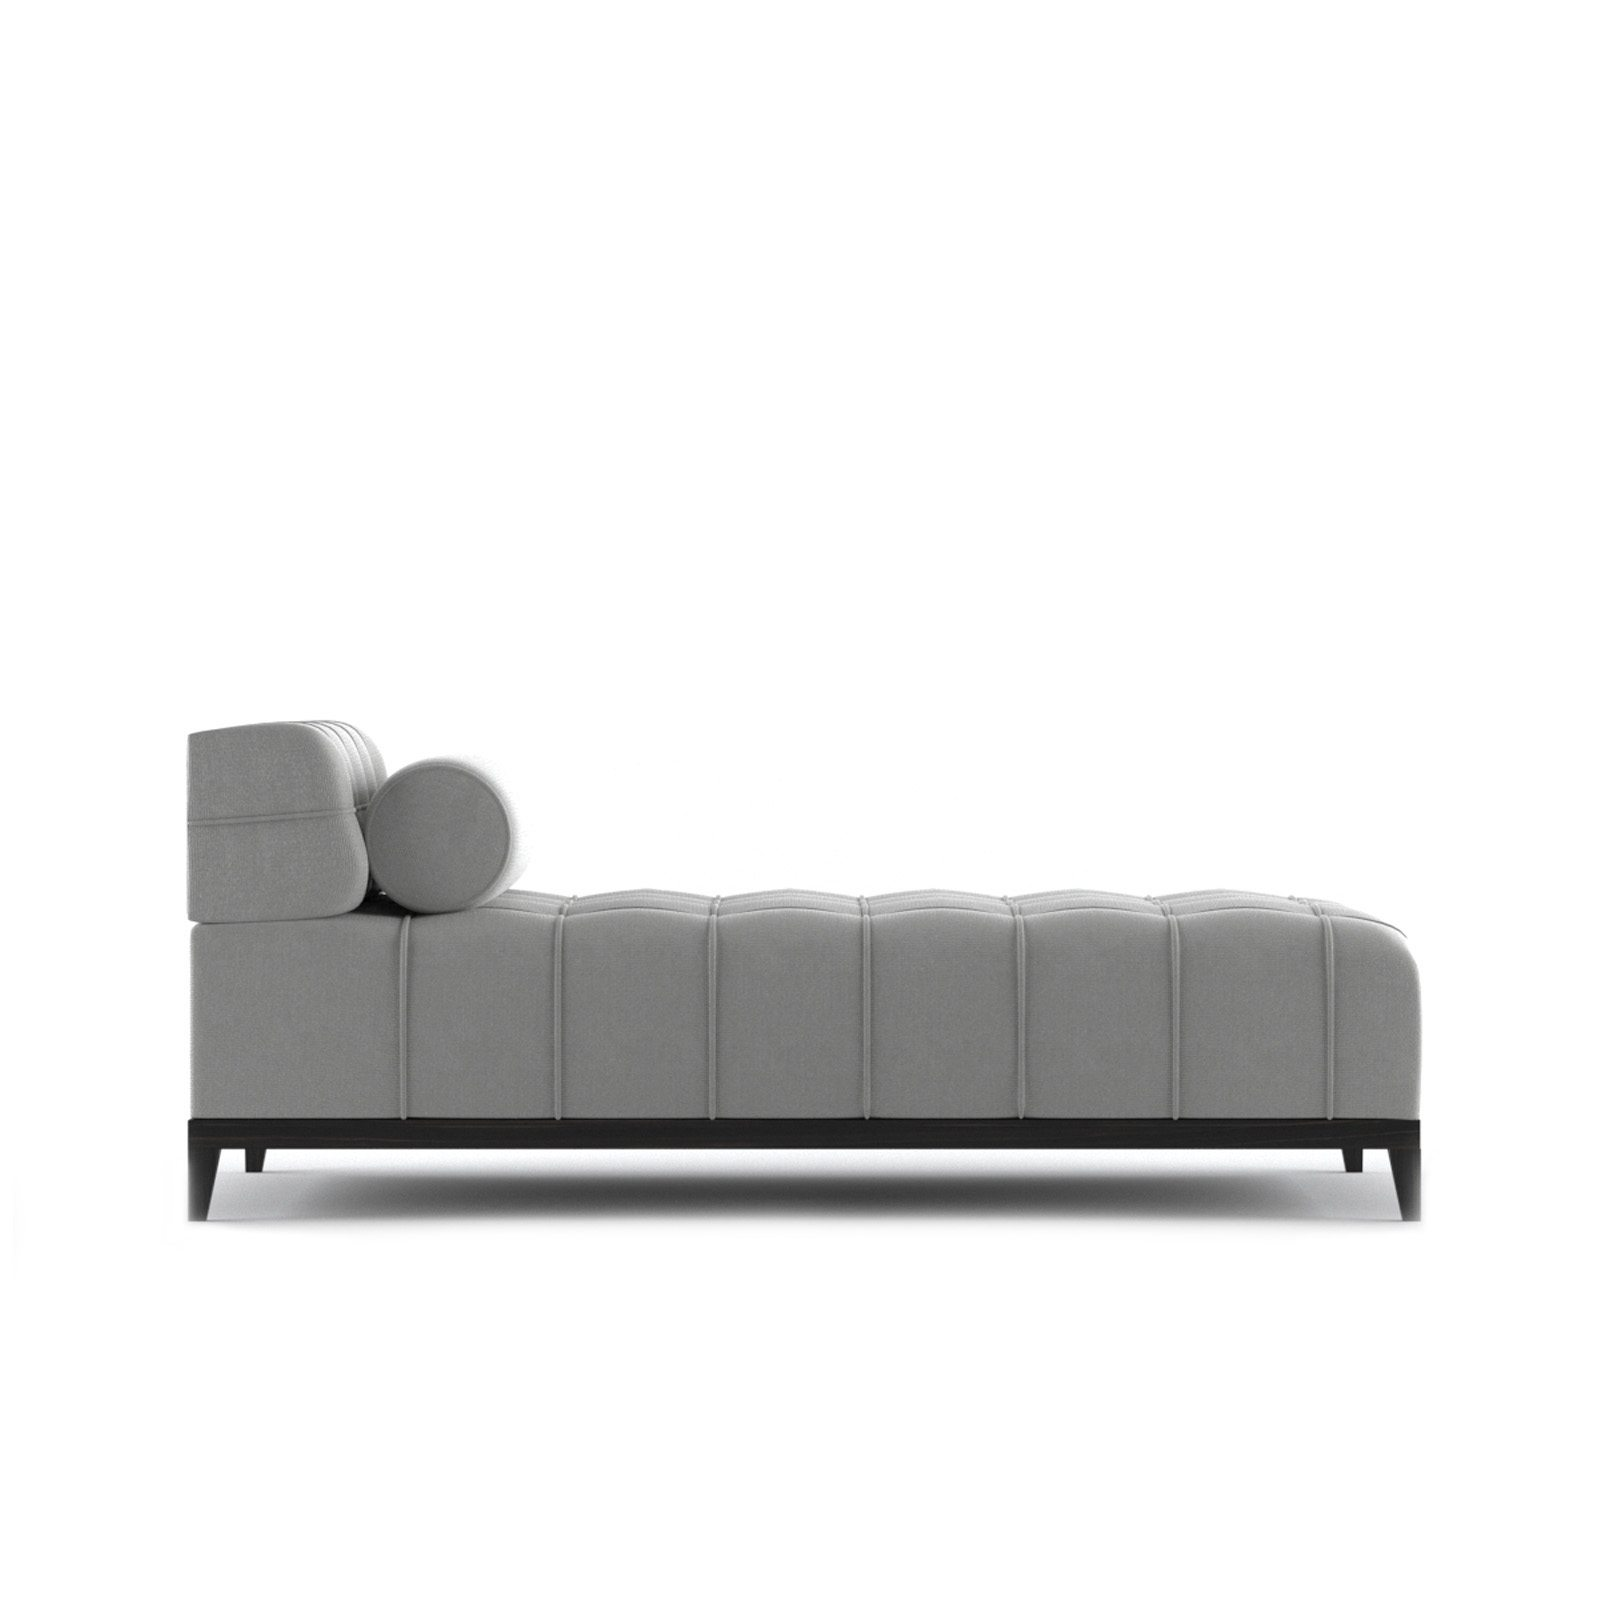 Luxury chaise longues chanel chaise longue bonham bonham for Chaise longue balancelle